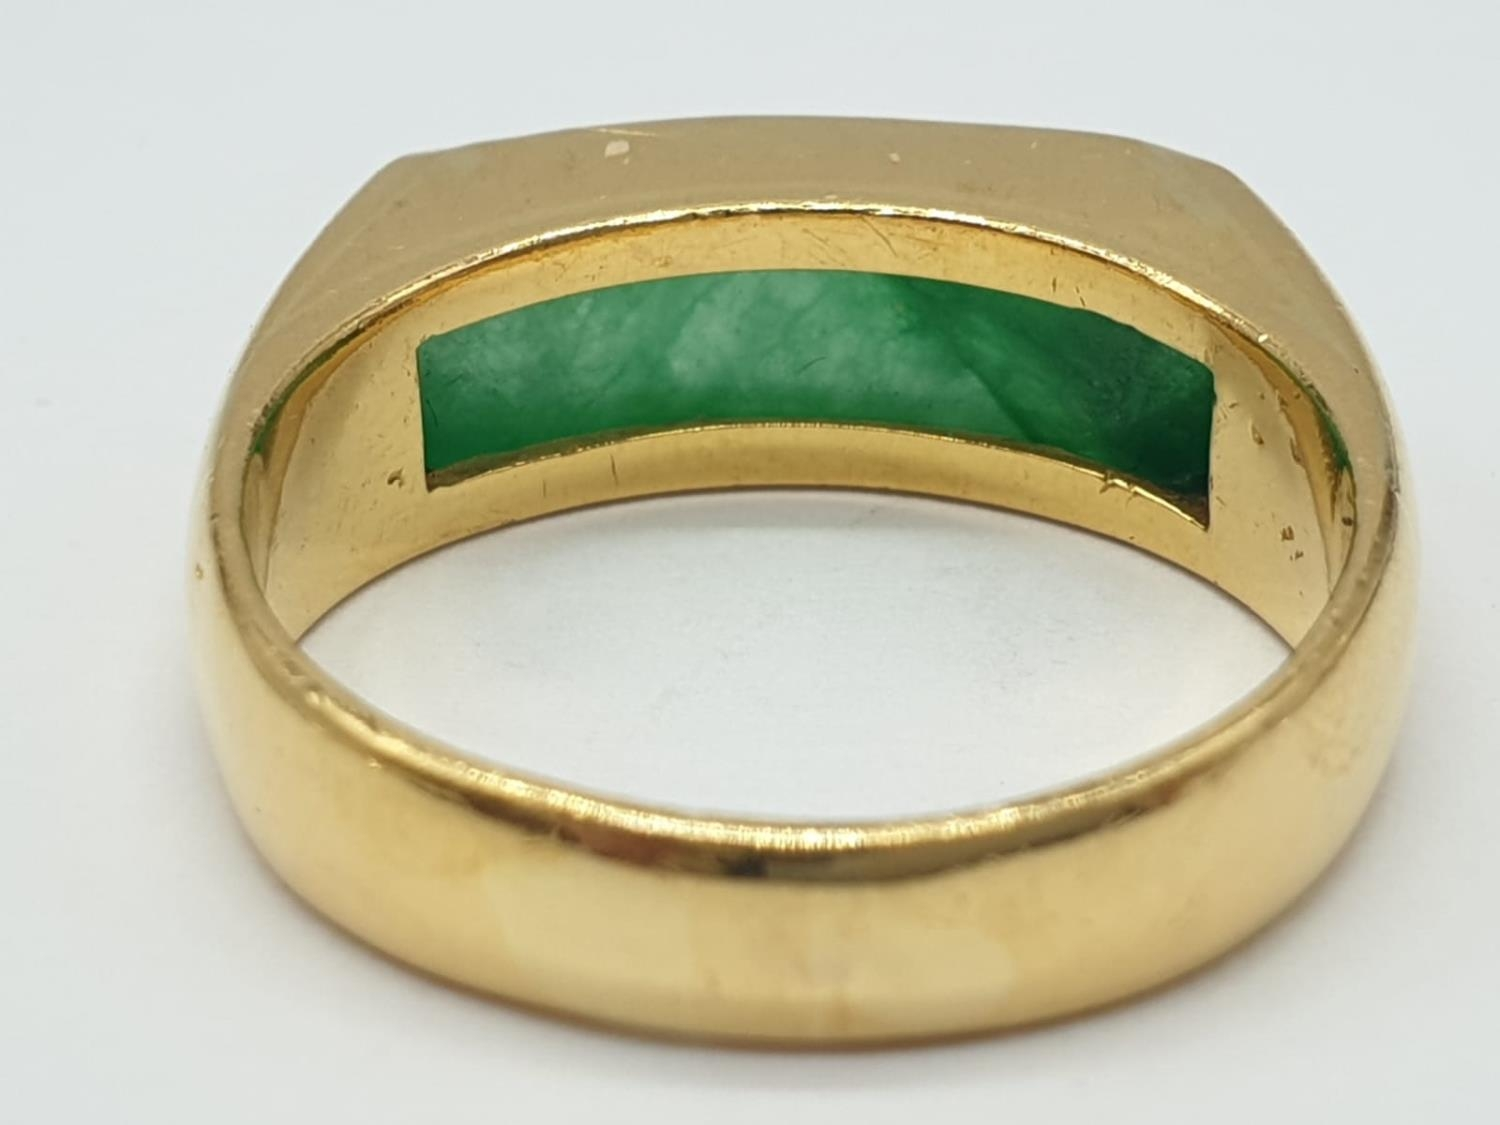 22ct gold ring with natural jade stone. 7.7g in weight and size T. - Image 4 of 7